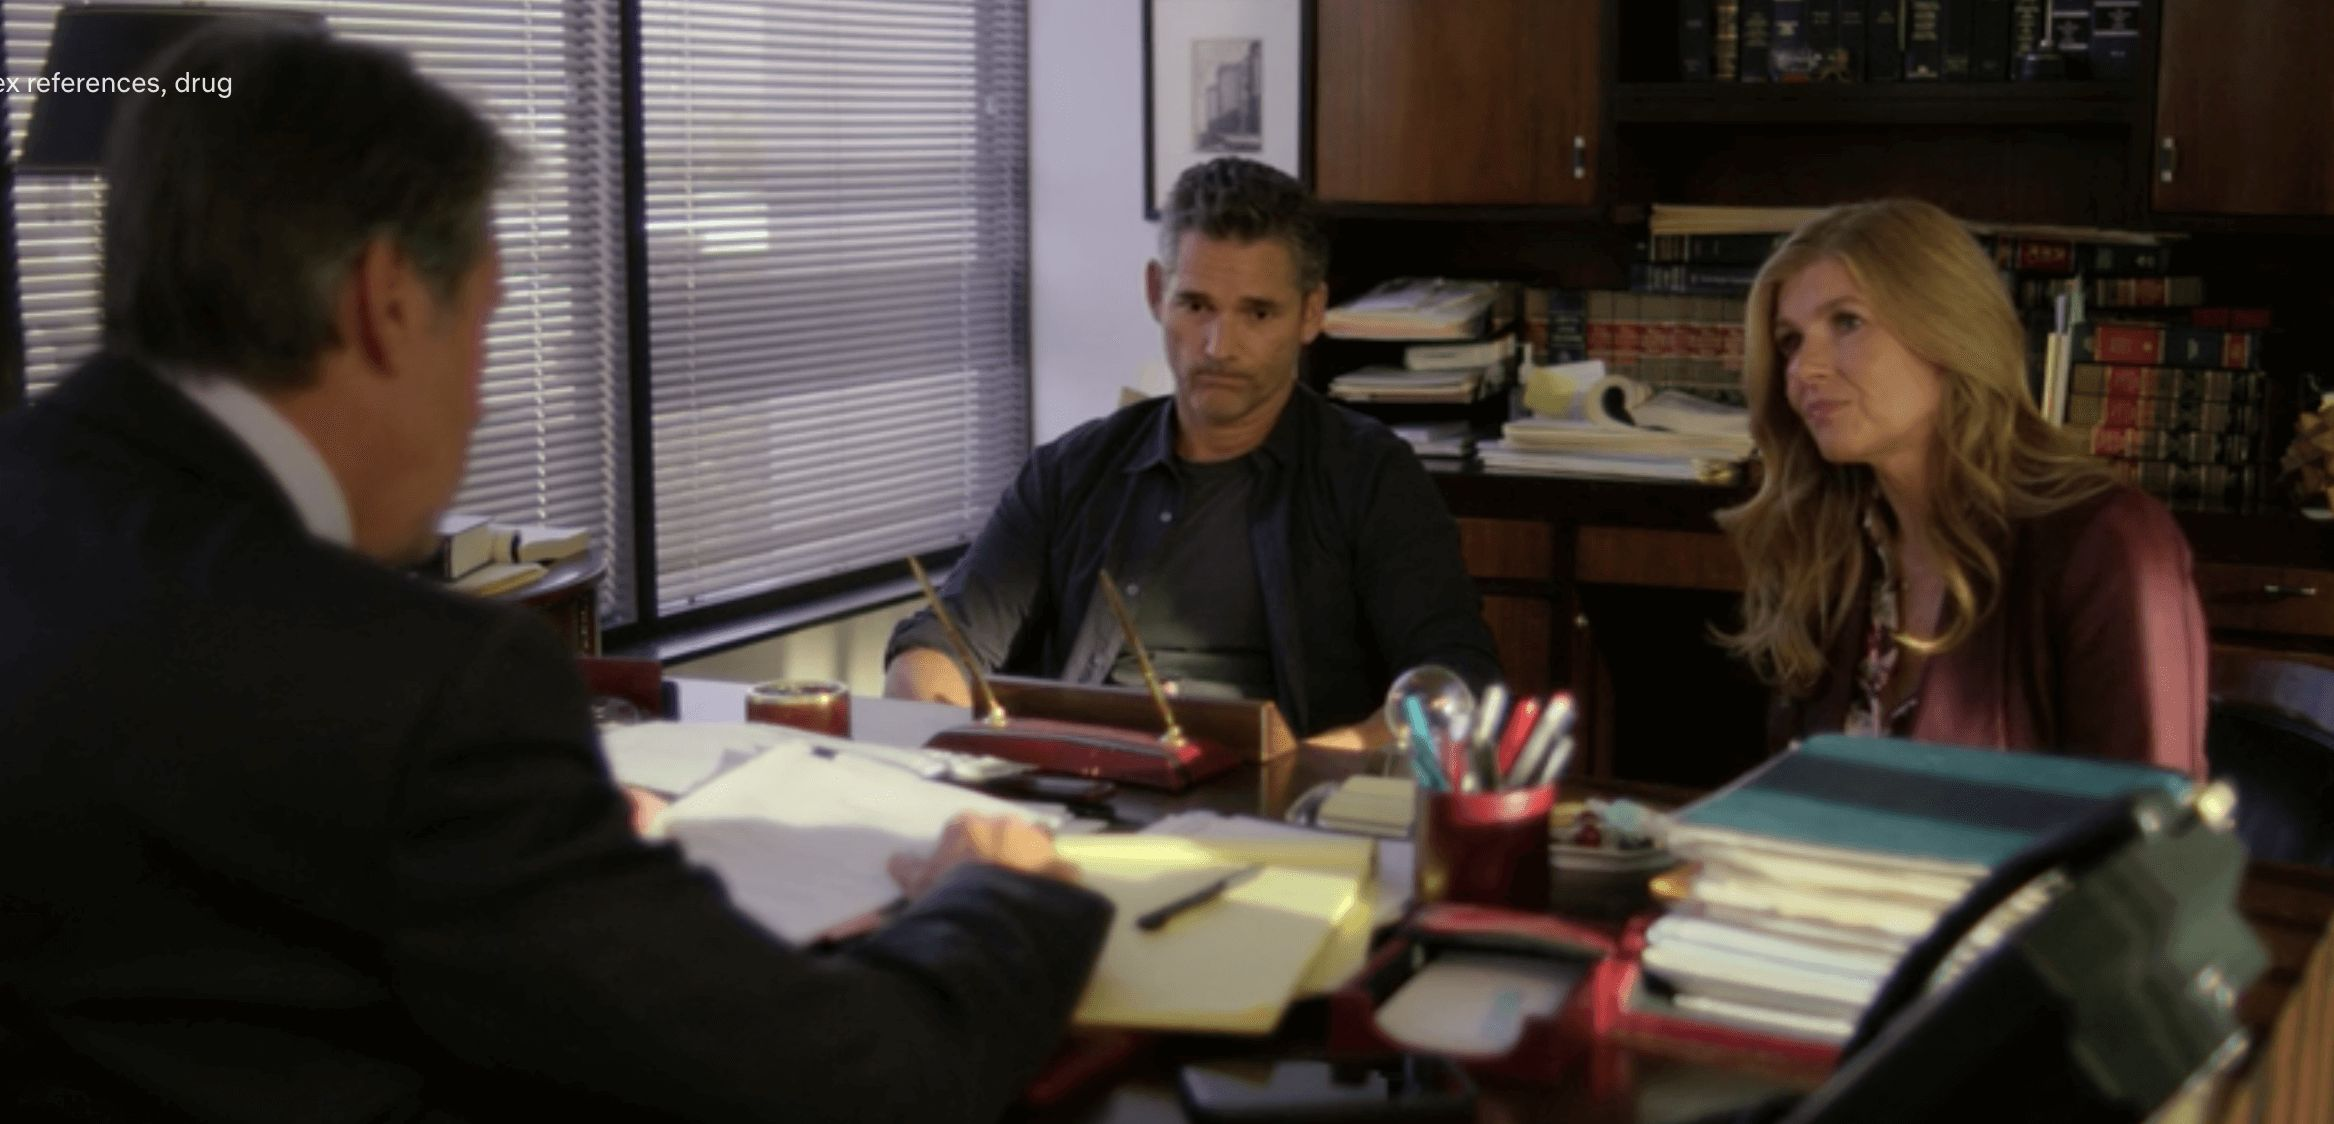 Image may contain: Dirty John moments, Dirty John, Netflix, John Meehan, Debra Newell, lawyer, Indoors, Monitor, LCD Screen, Screen, Display, Computer, Electronics, Person, Human, Desk, Table, Furniture